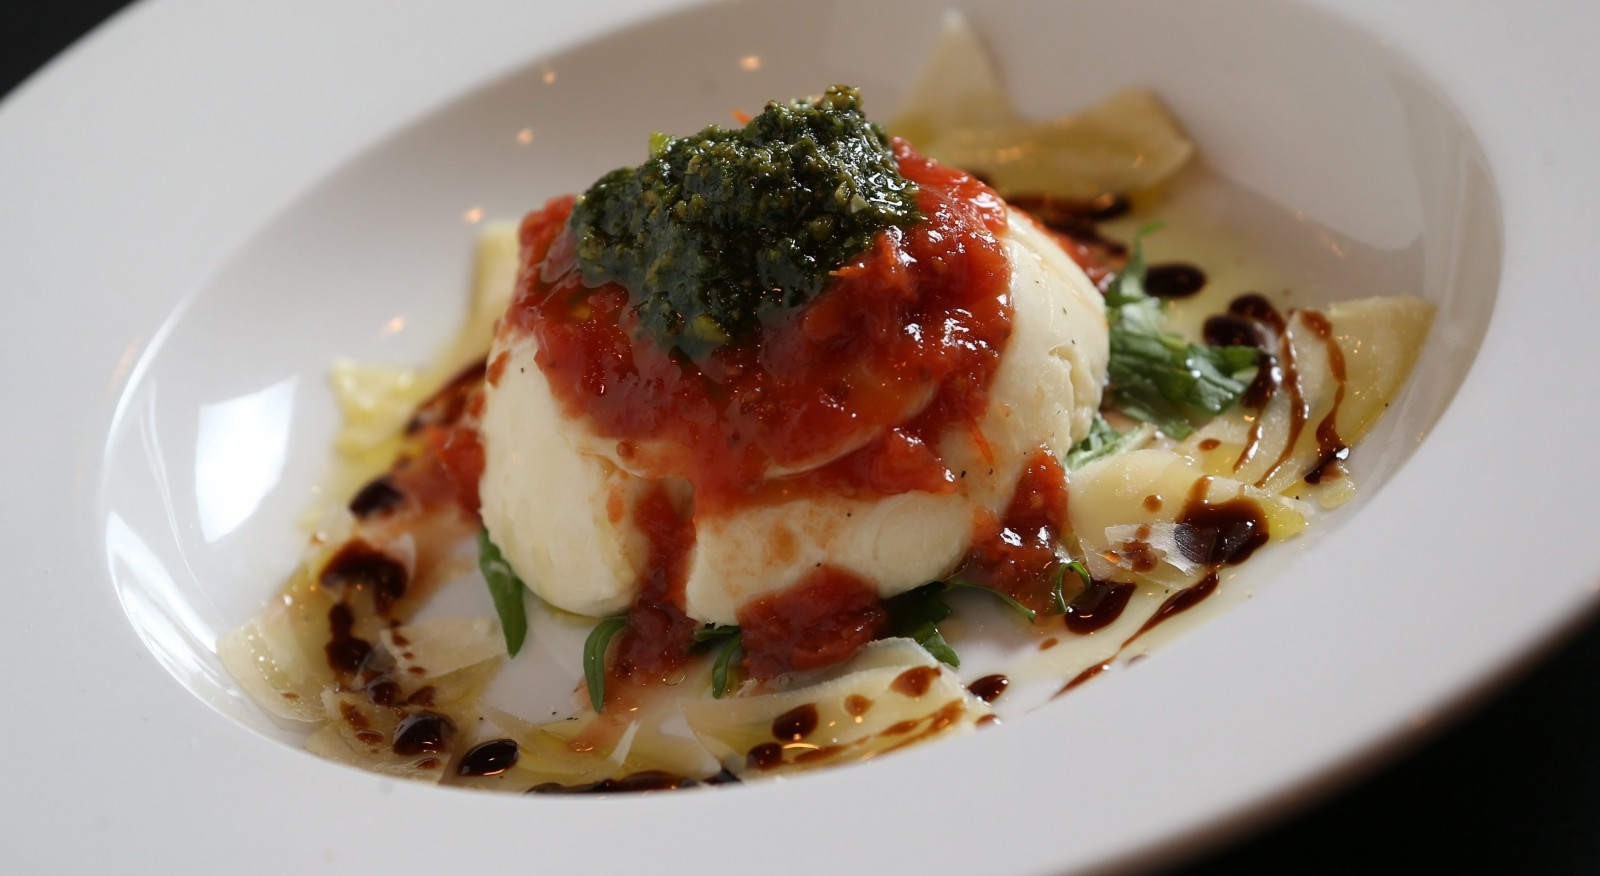 House-made stuffed mozzarella and ricotta, tomato jam and pistachio pesto from Cipollina. (Sharon Cantillon/Buffalo News)